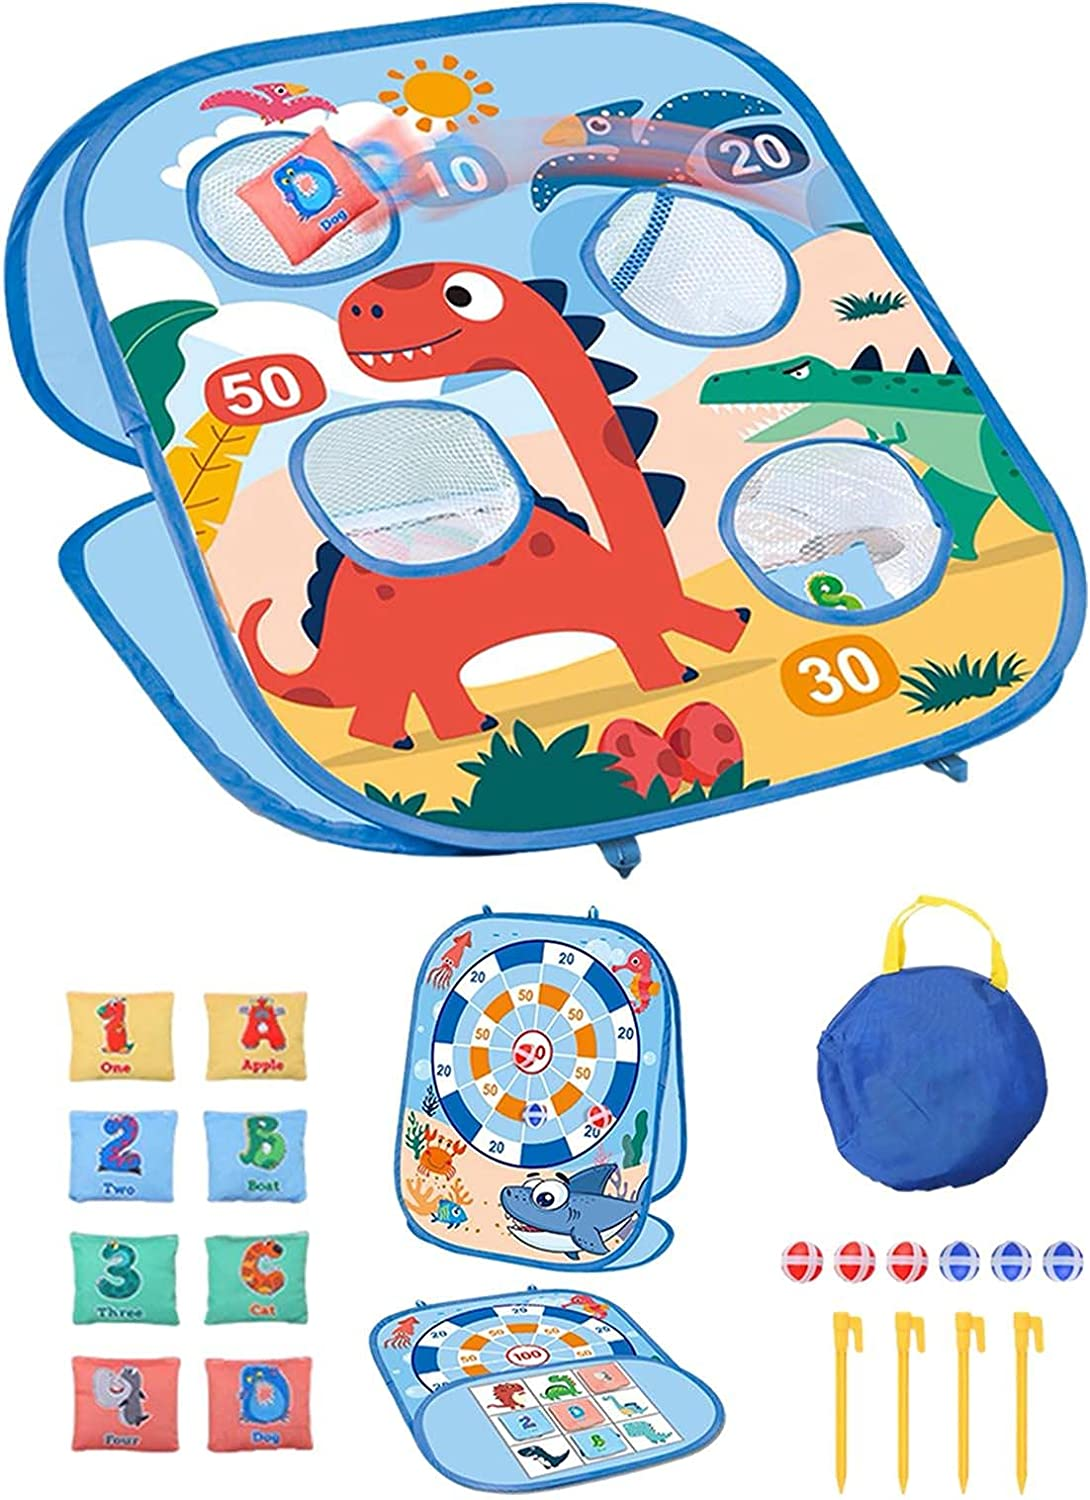 N.R OFFicial store Throwing Game Bean Bag 3 Indoo Interactive Selling Parent-Child 1 in